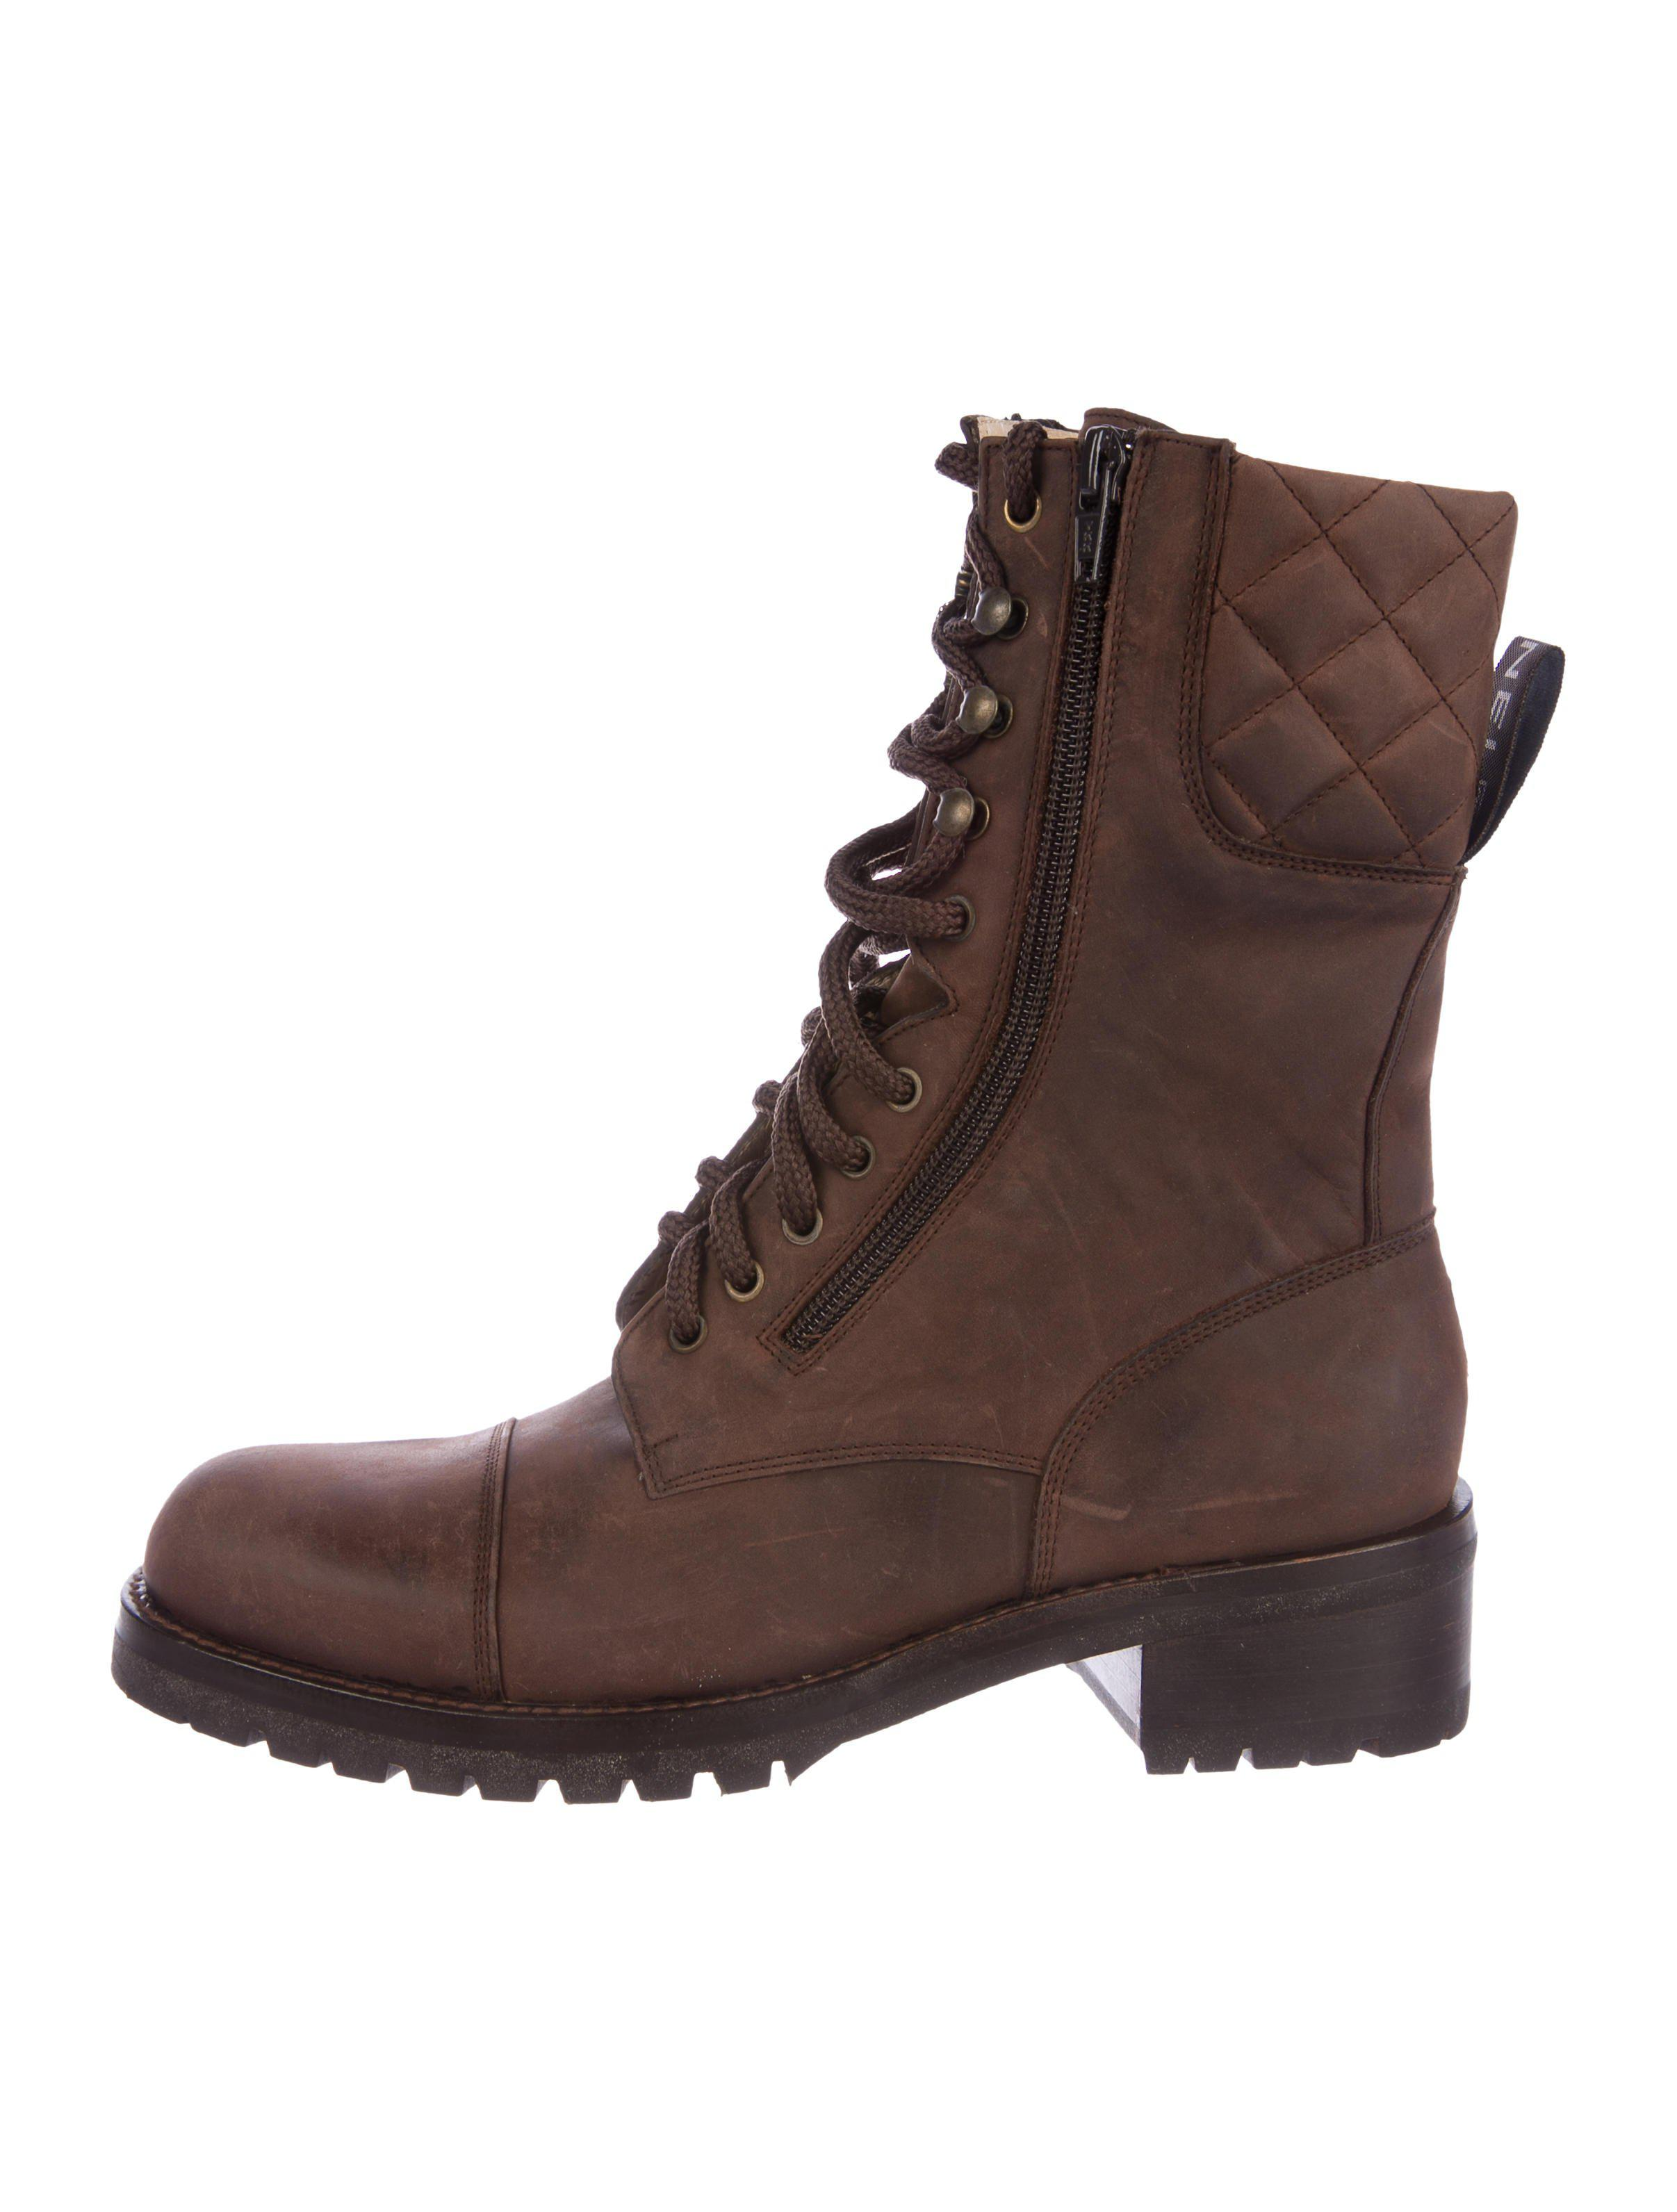 d5ce9c0dab4 Lyst - Chanel Cc Suede Combat Booties W  Tags in Brown for Men